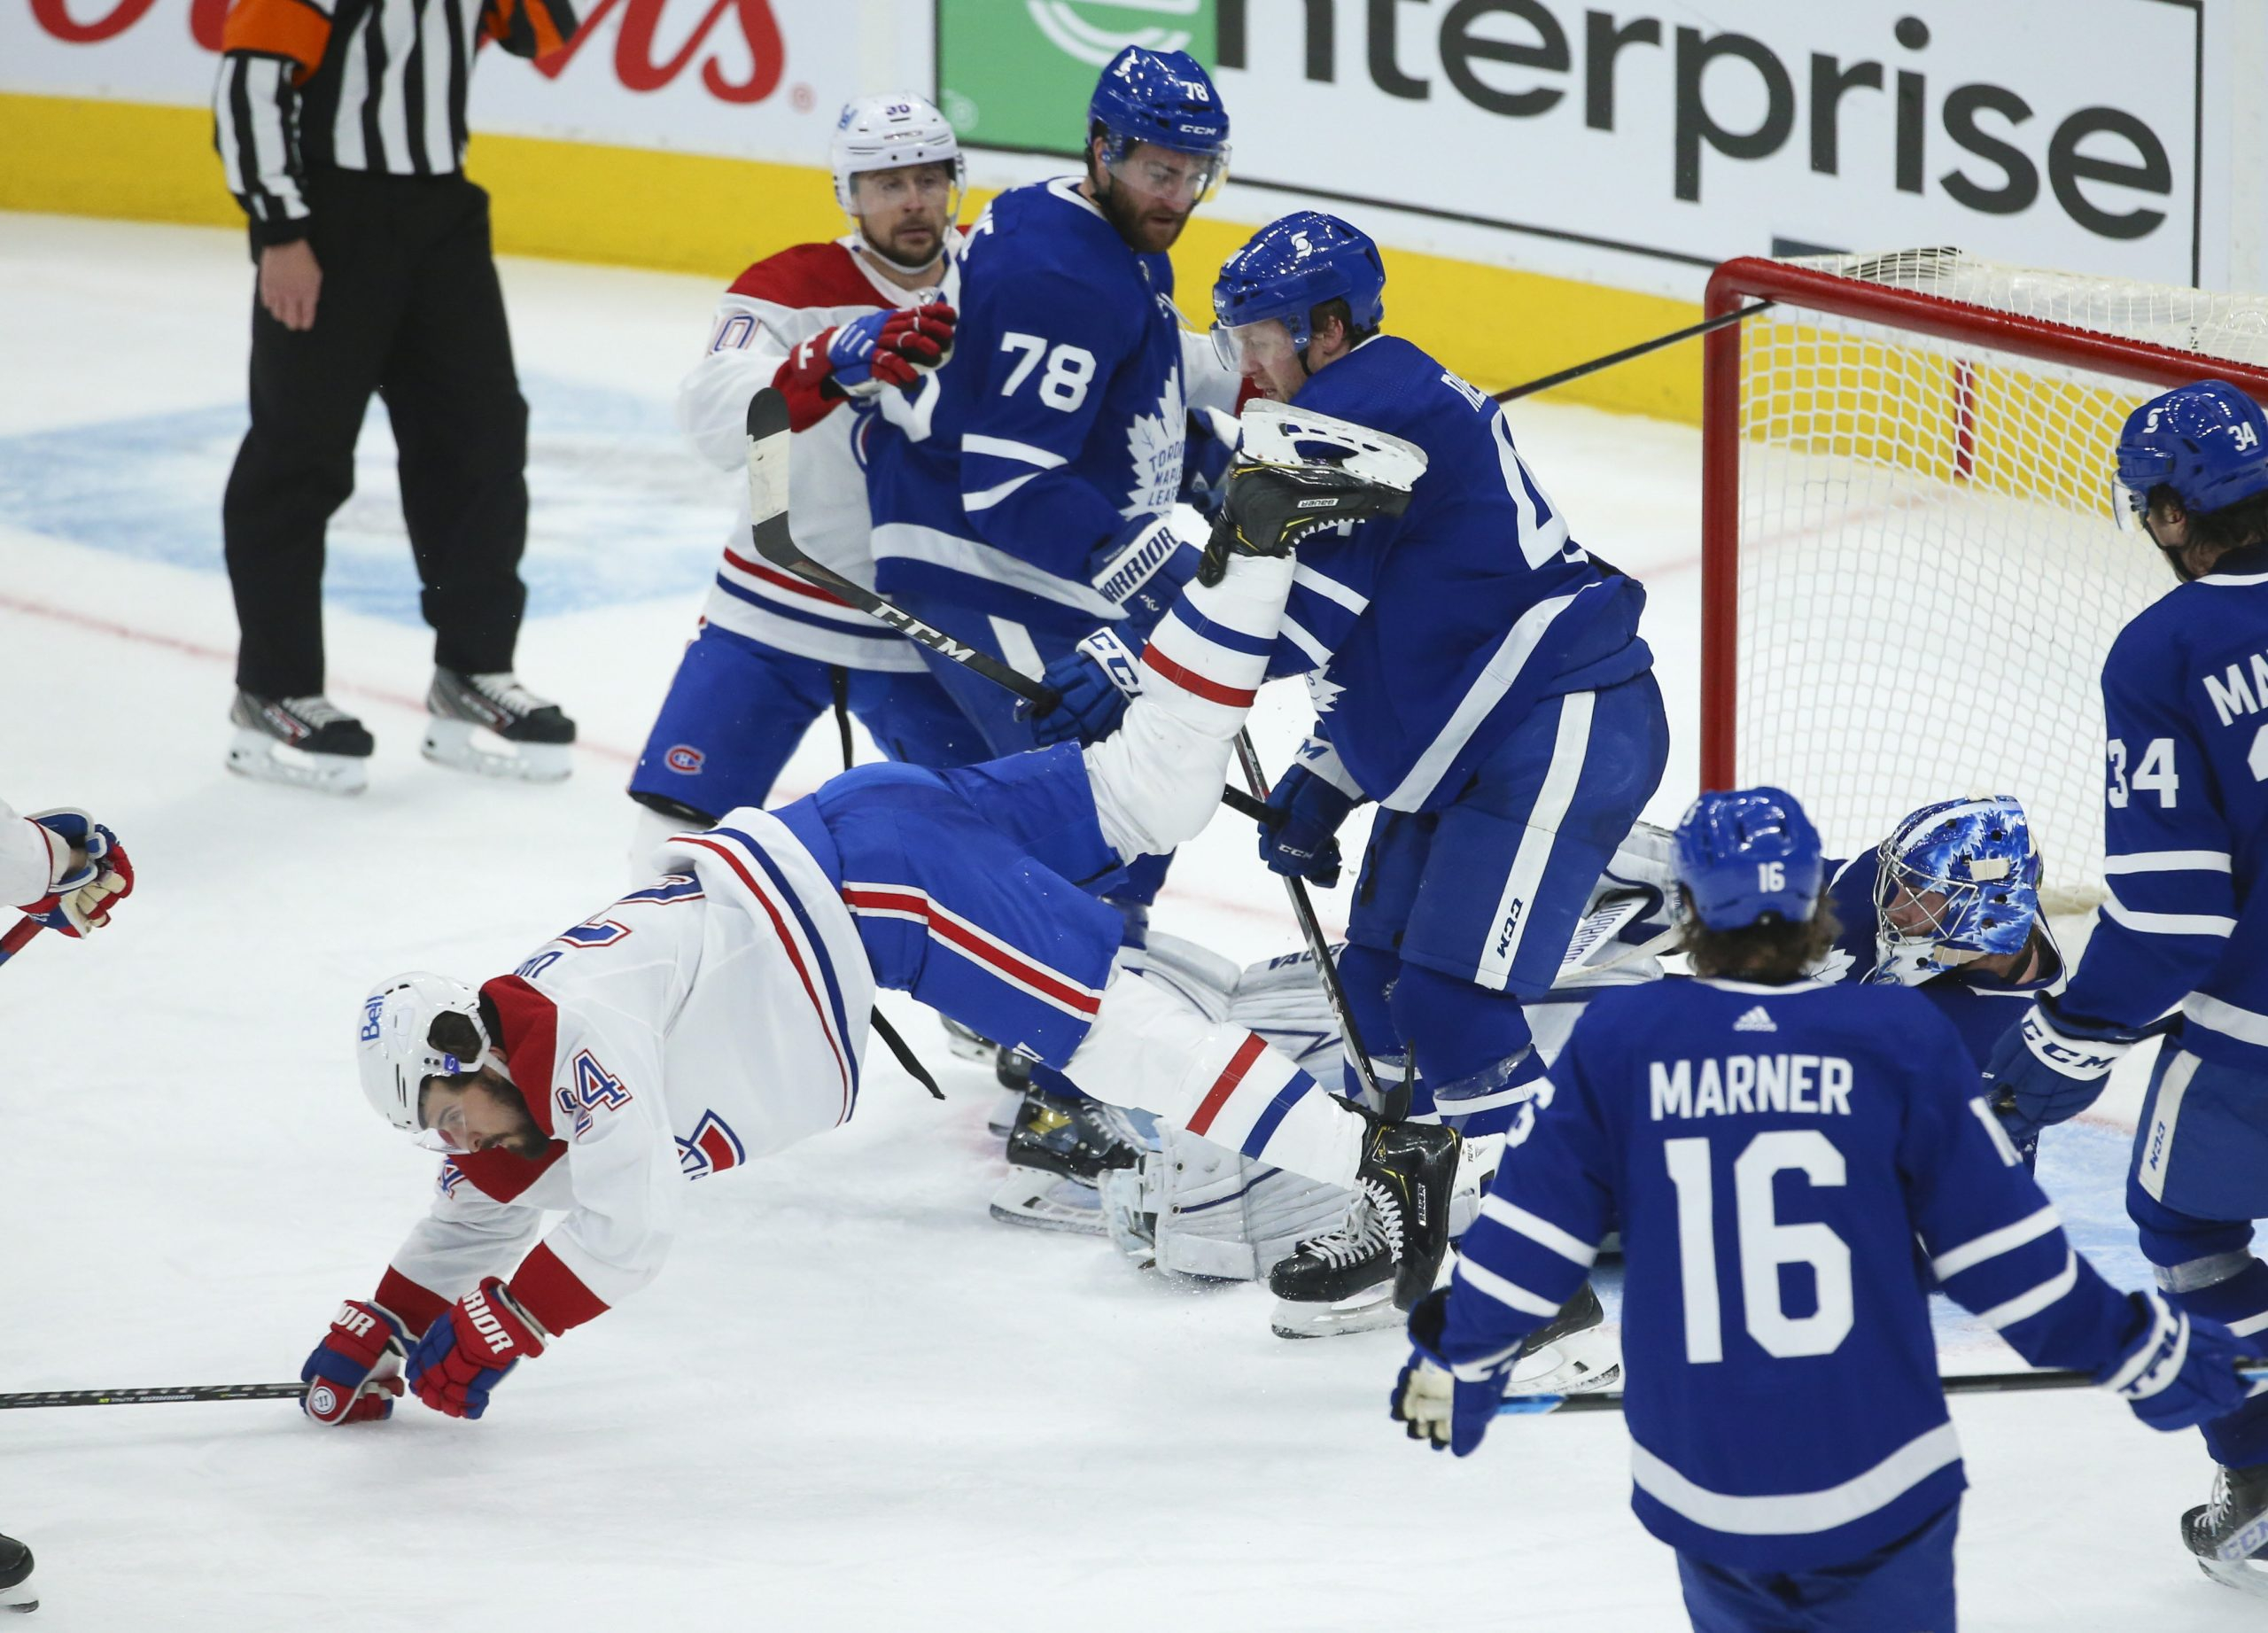 PERFECT 10: Campbell sets franchise record as Maple Leafs outlast Habs